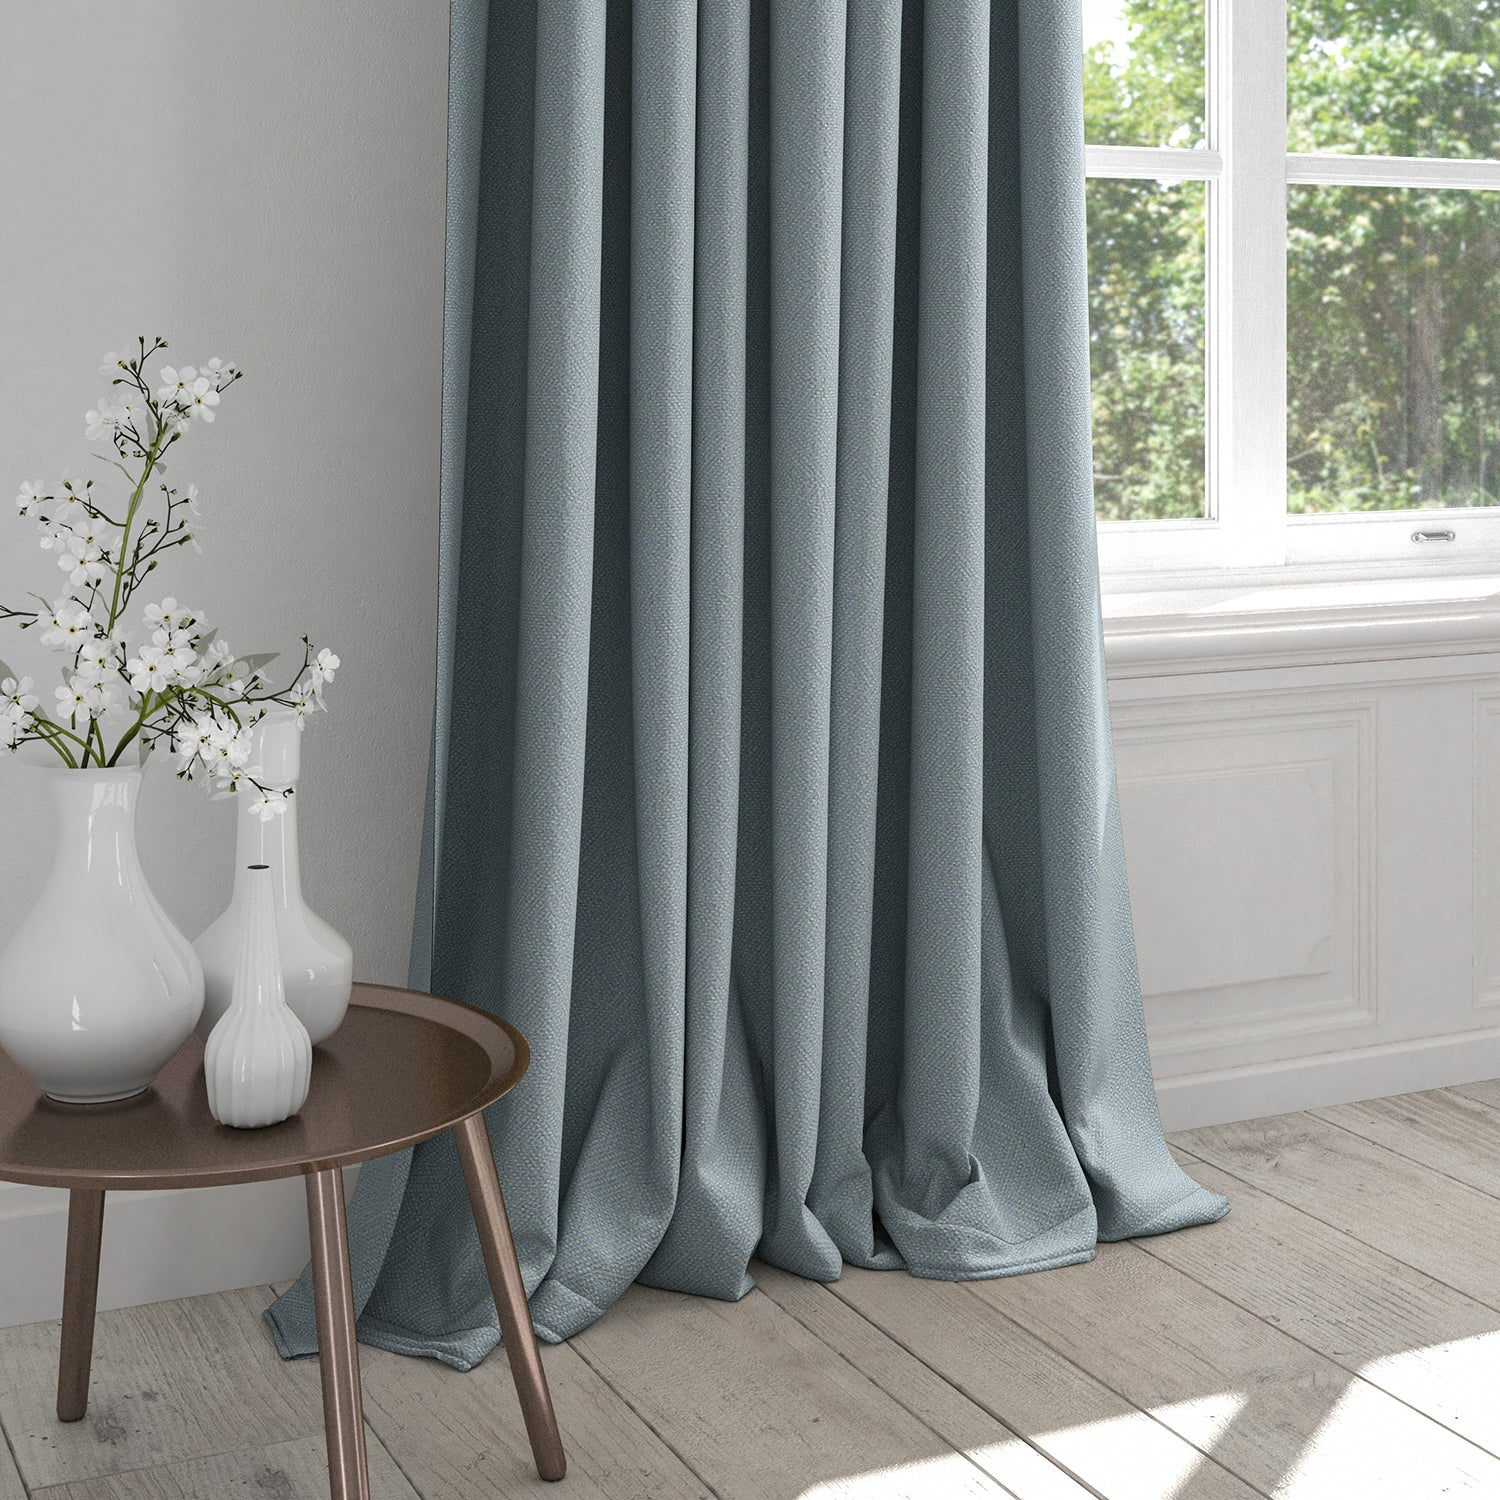 Curtain in a light blue fabric with light woven geometric design